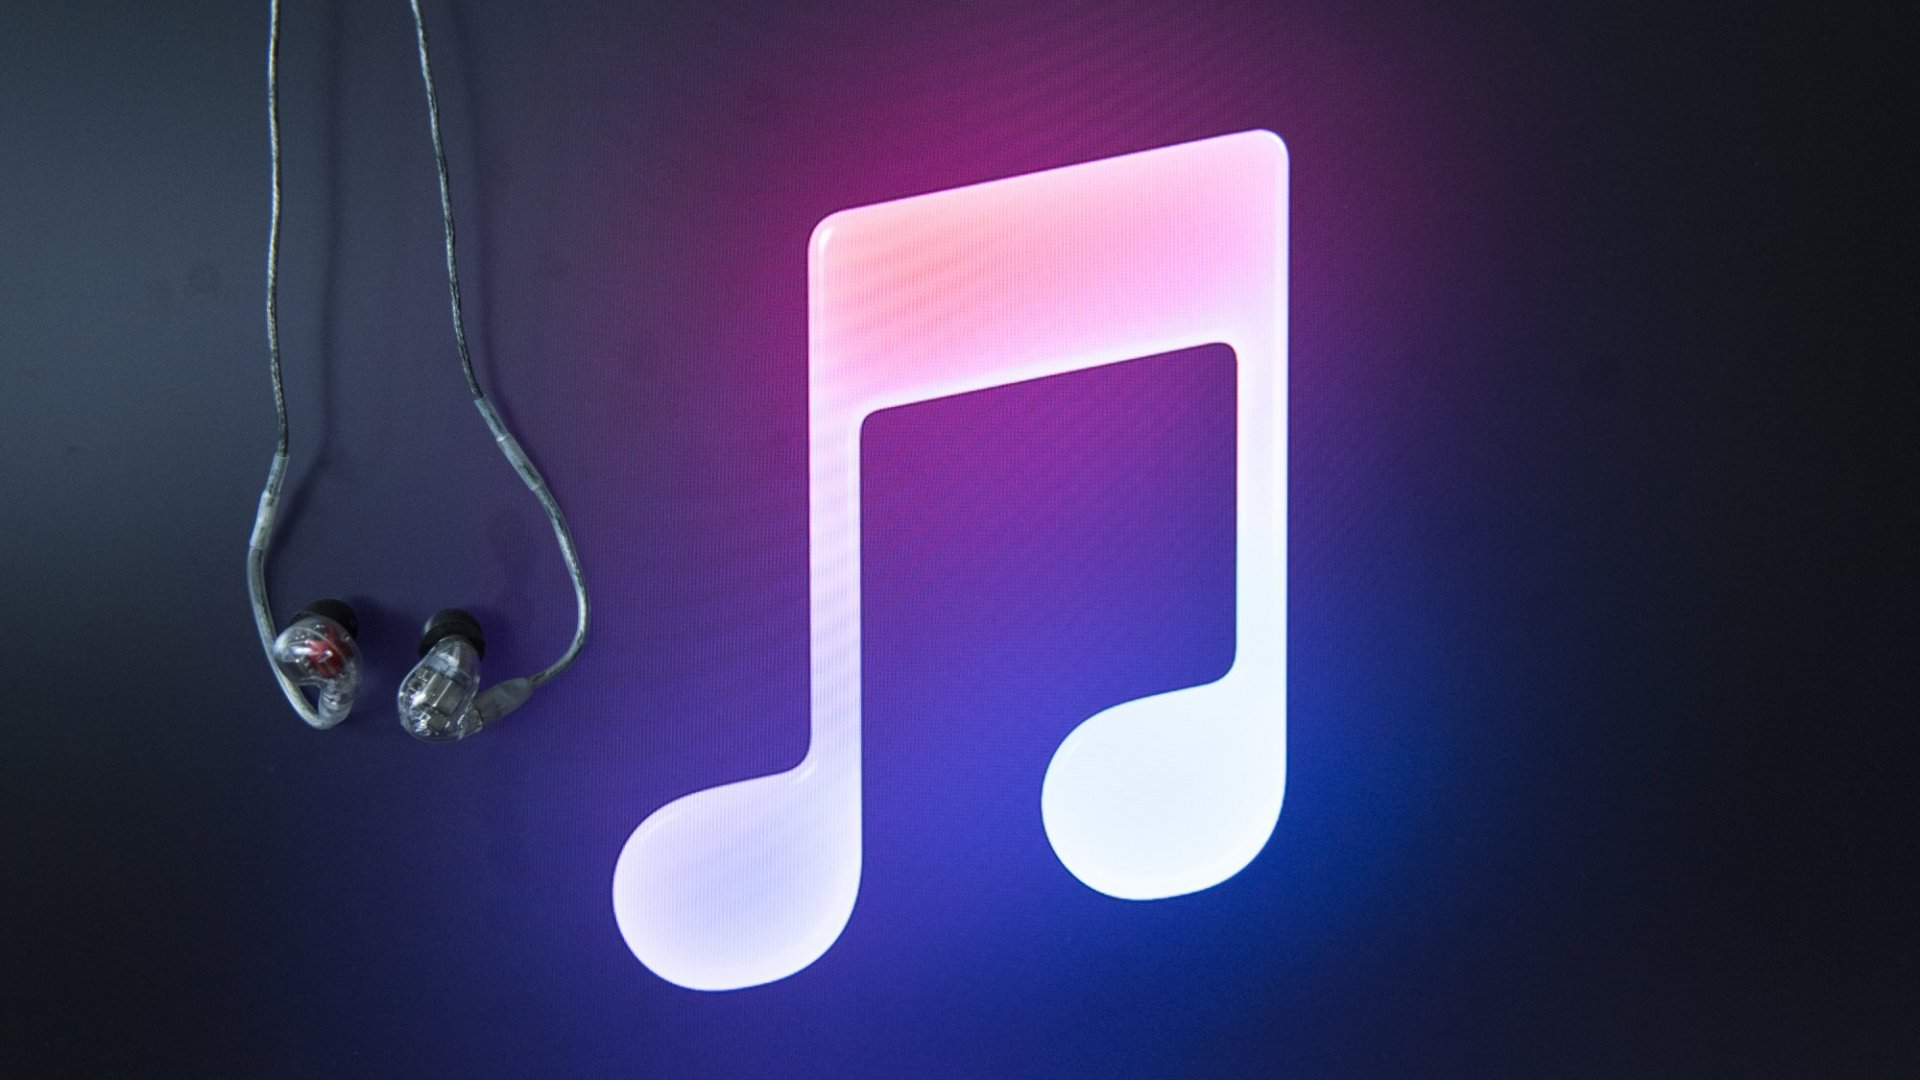 Back to Back Music - 2020-10-08 16:00:00